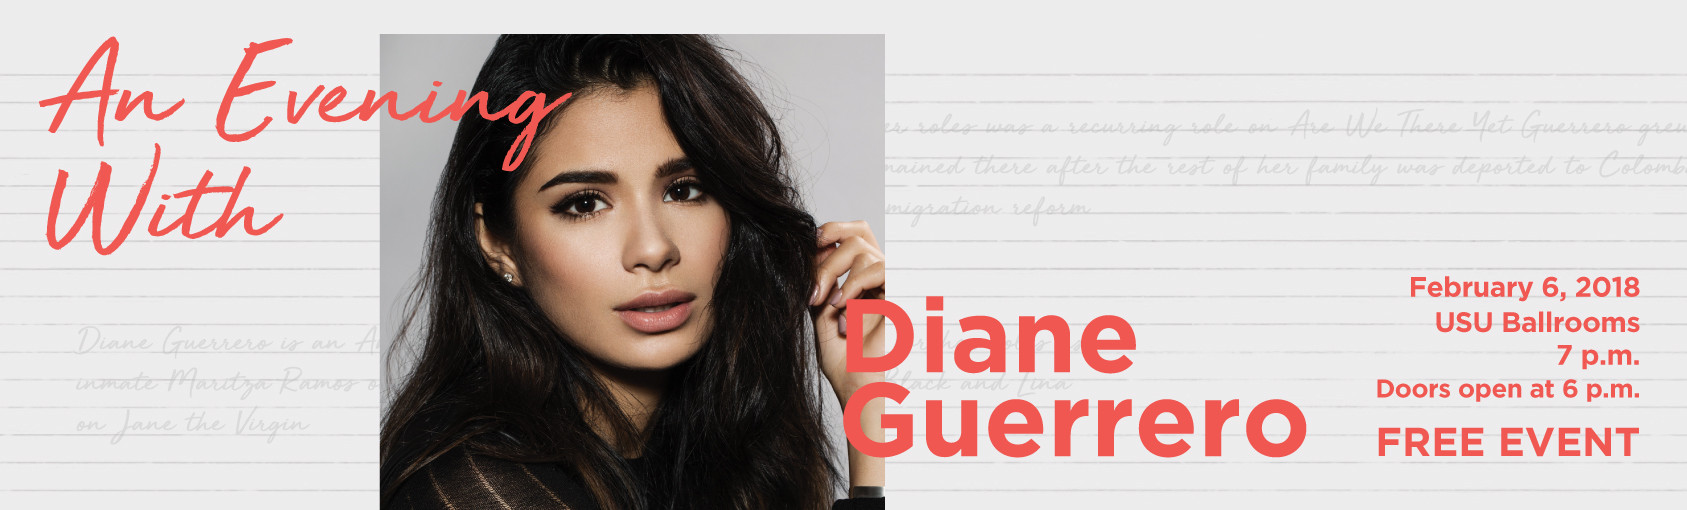 An Evening With Diane Guerrero banner